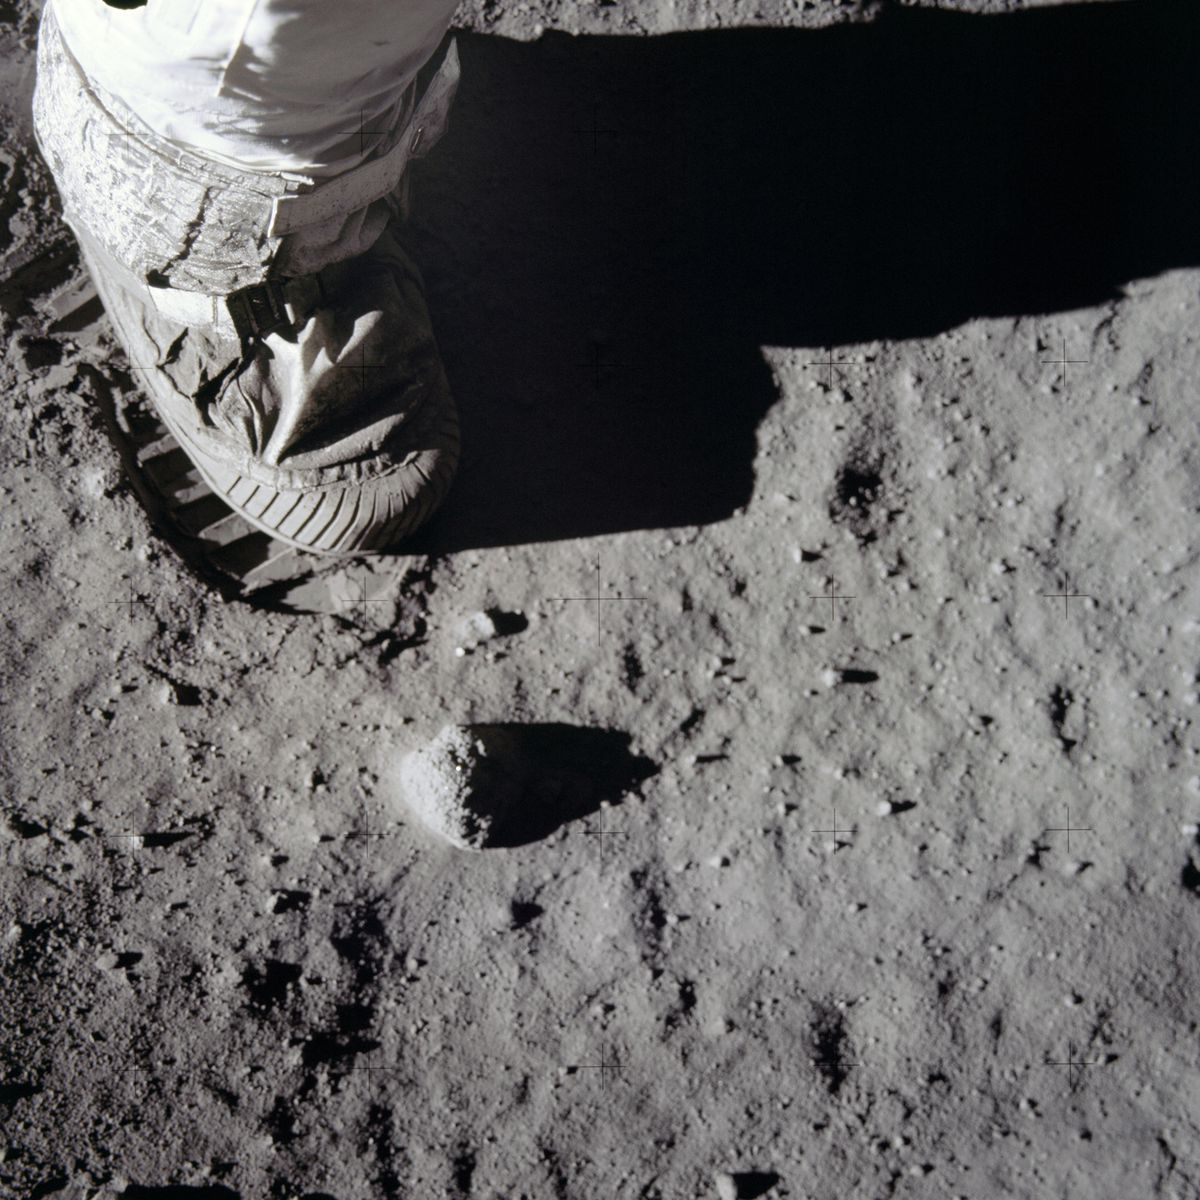 Astronaut footprint on the moon